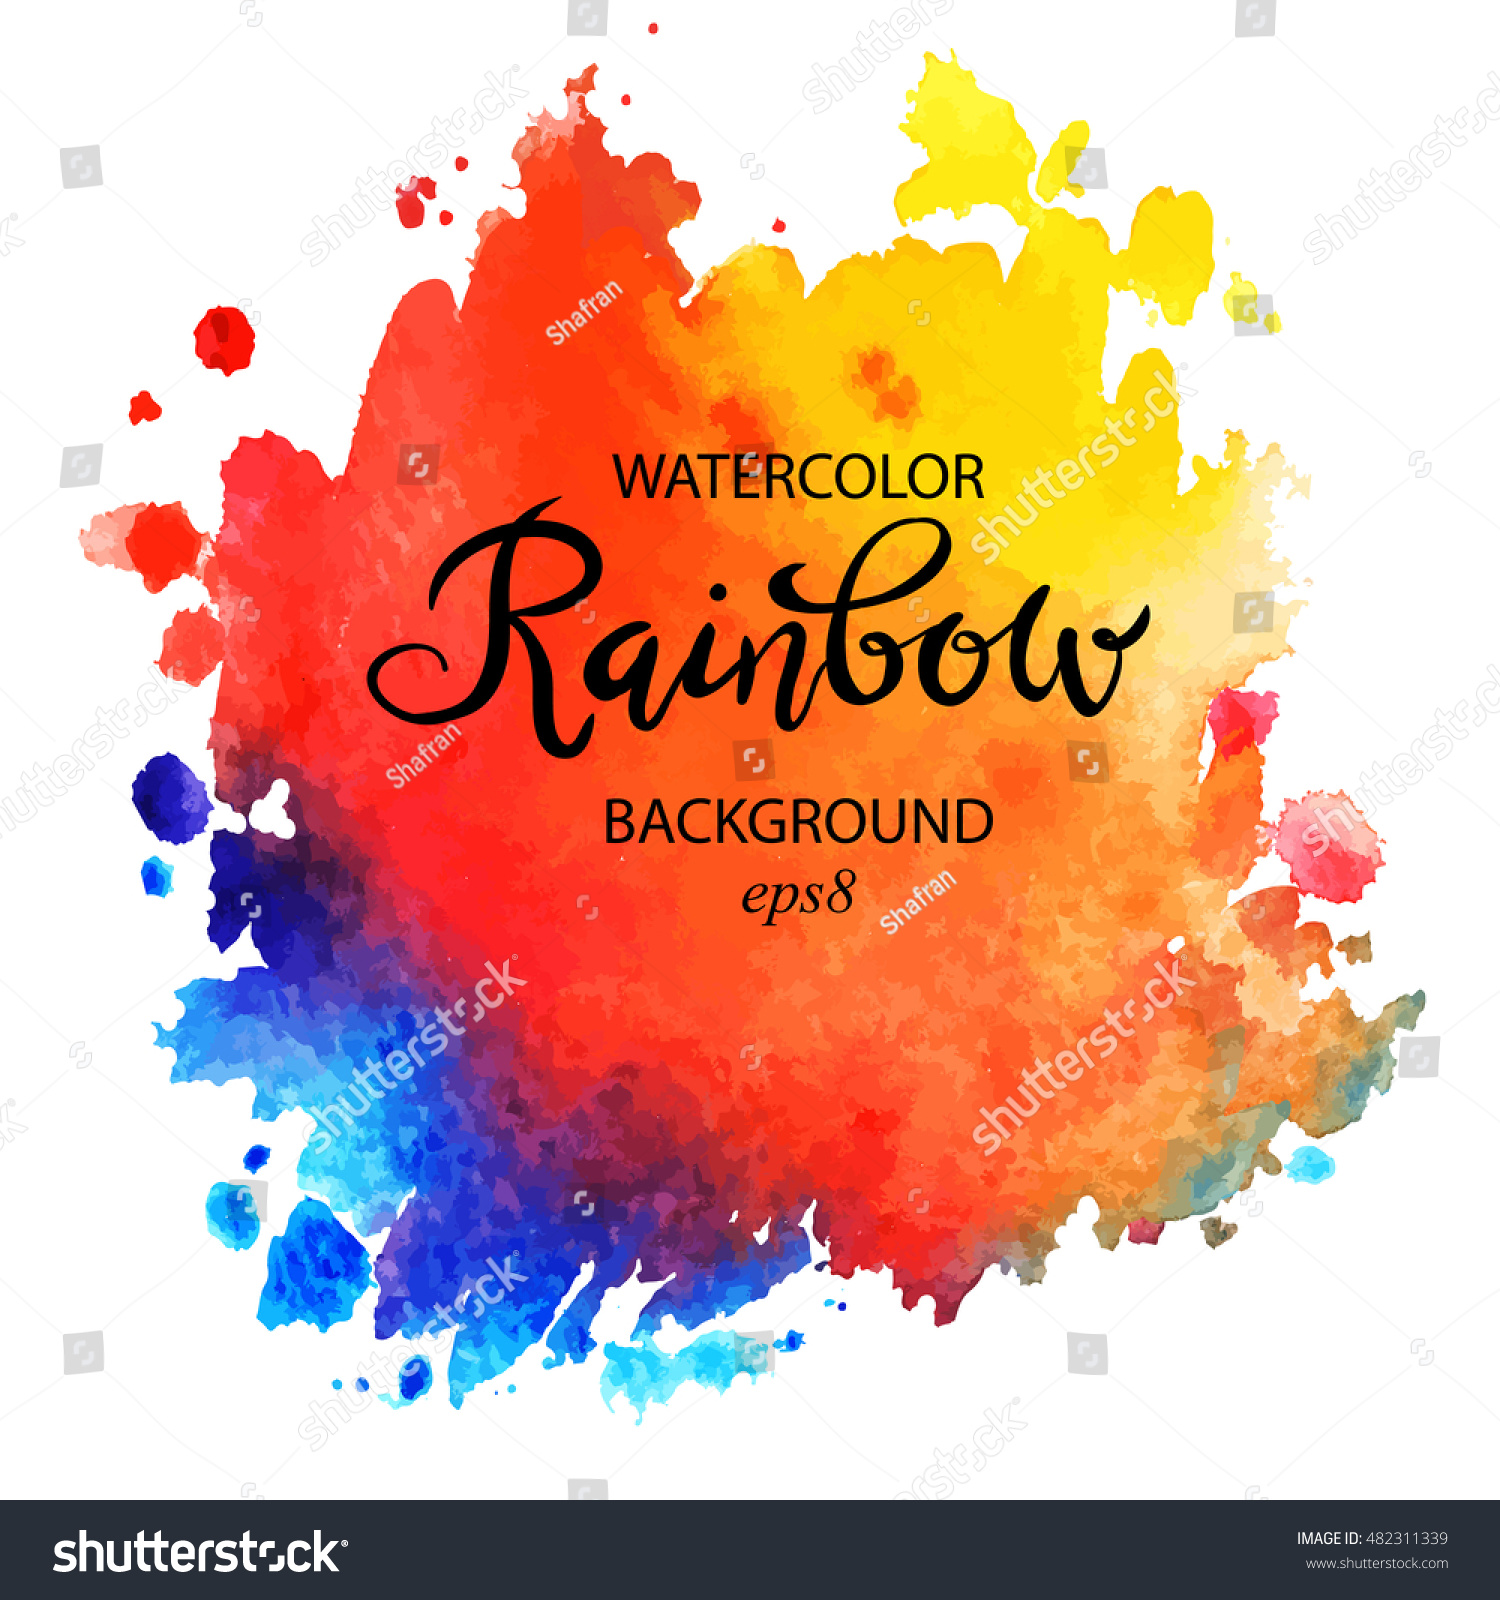 Hand painted mermaid watercolor vector silhouette stock vector - Watercolor Hand Paint Rainbow Spot Vector Artistic Illustration Isolated On White Background Colorful Multicolor